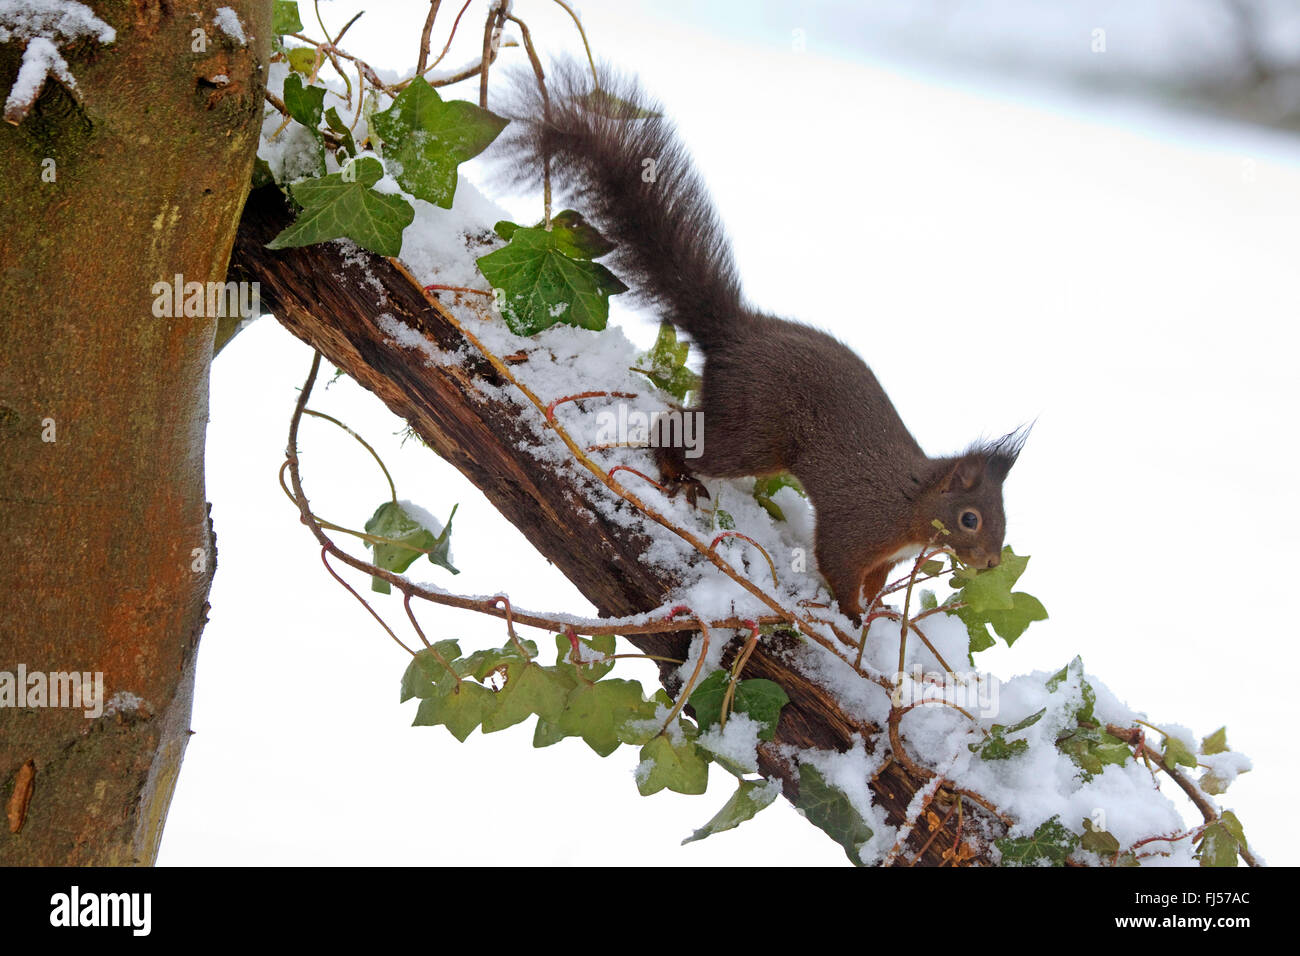 European red squirrel, Eurasian red squirrel (Sciurus vulgaris), searching food by fresh snow on a branch, Germany, Stock Photo